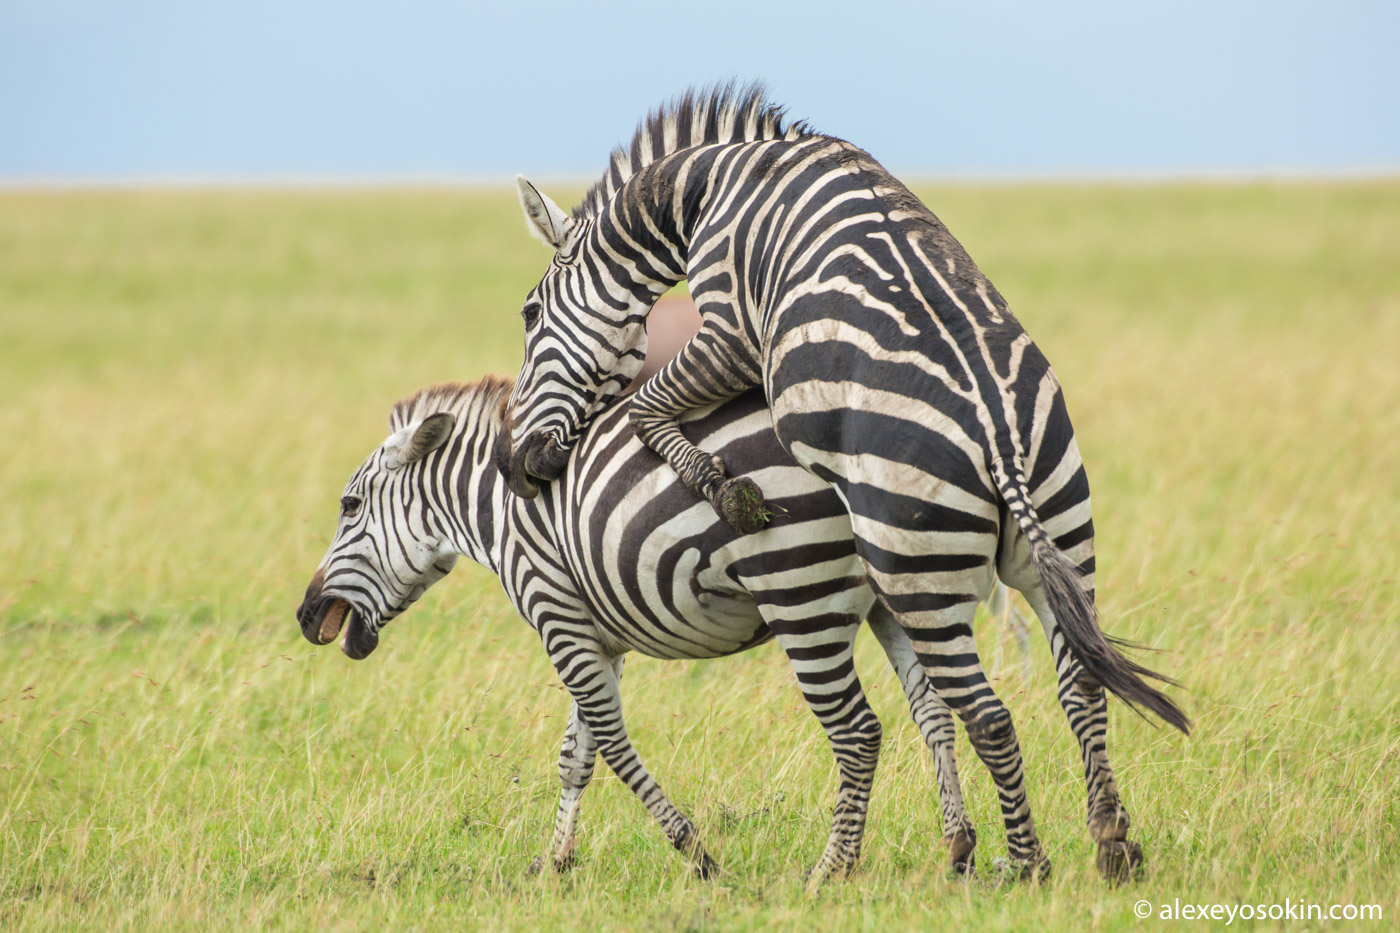 Meting zebras, mar.2018-ao--3.jpg